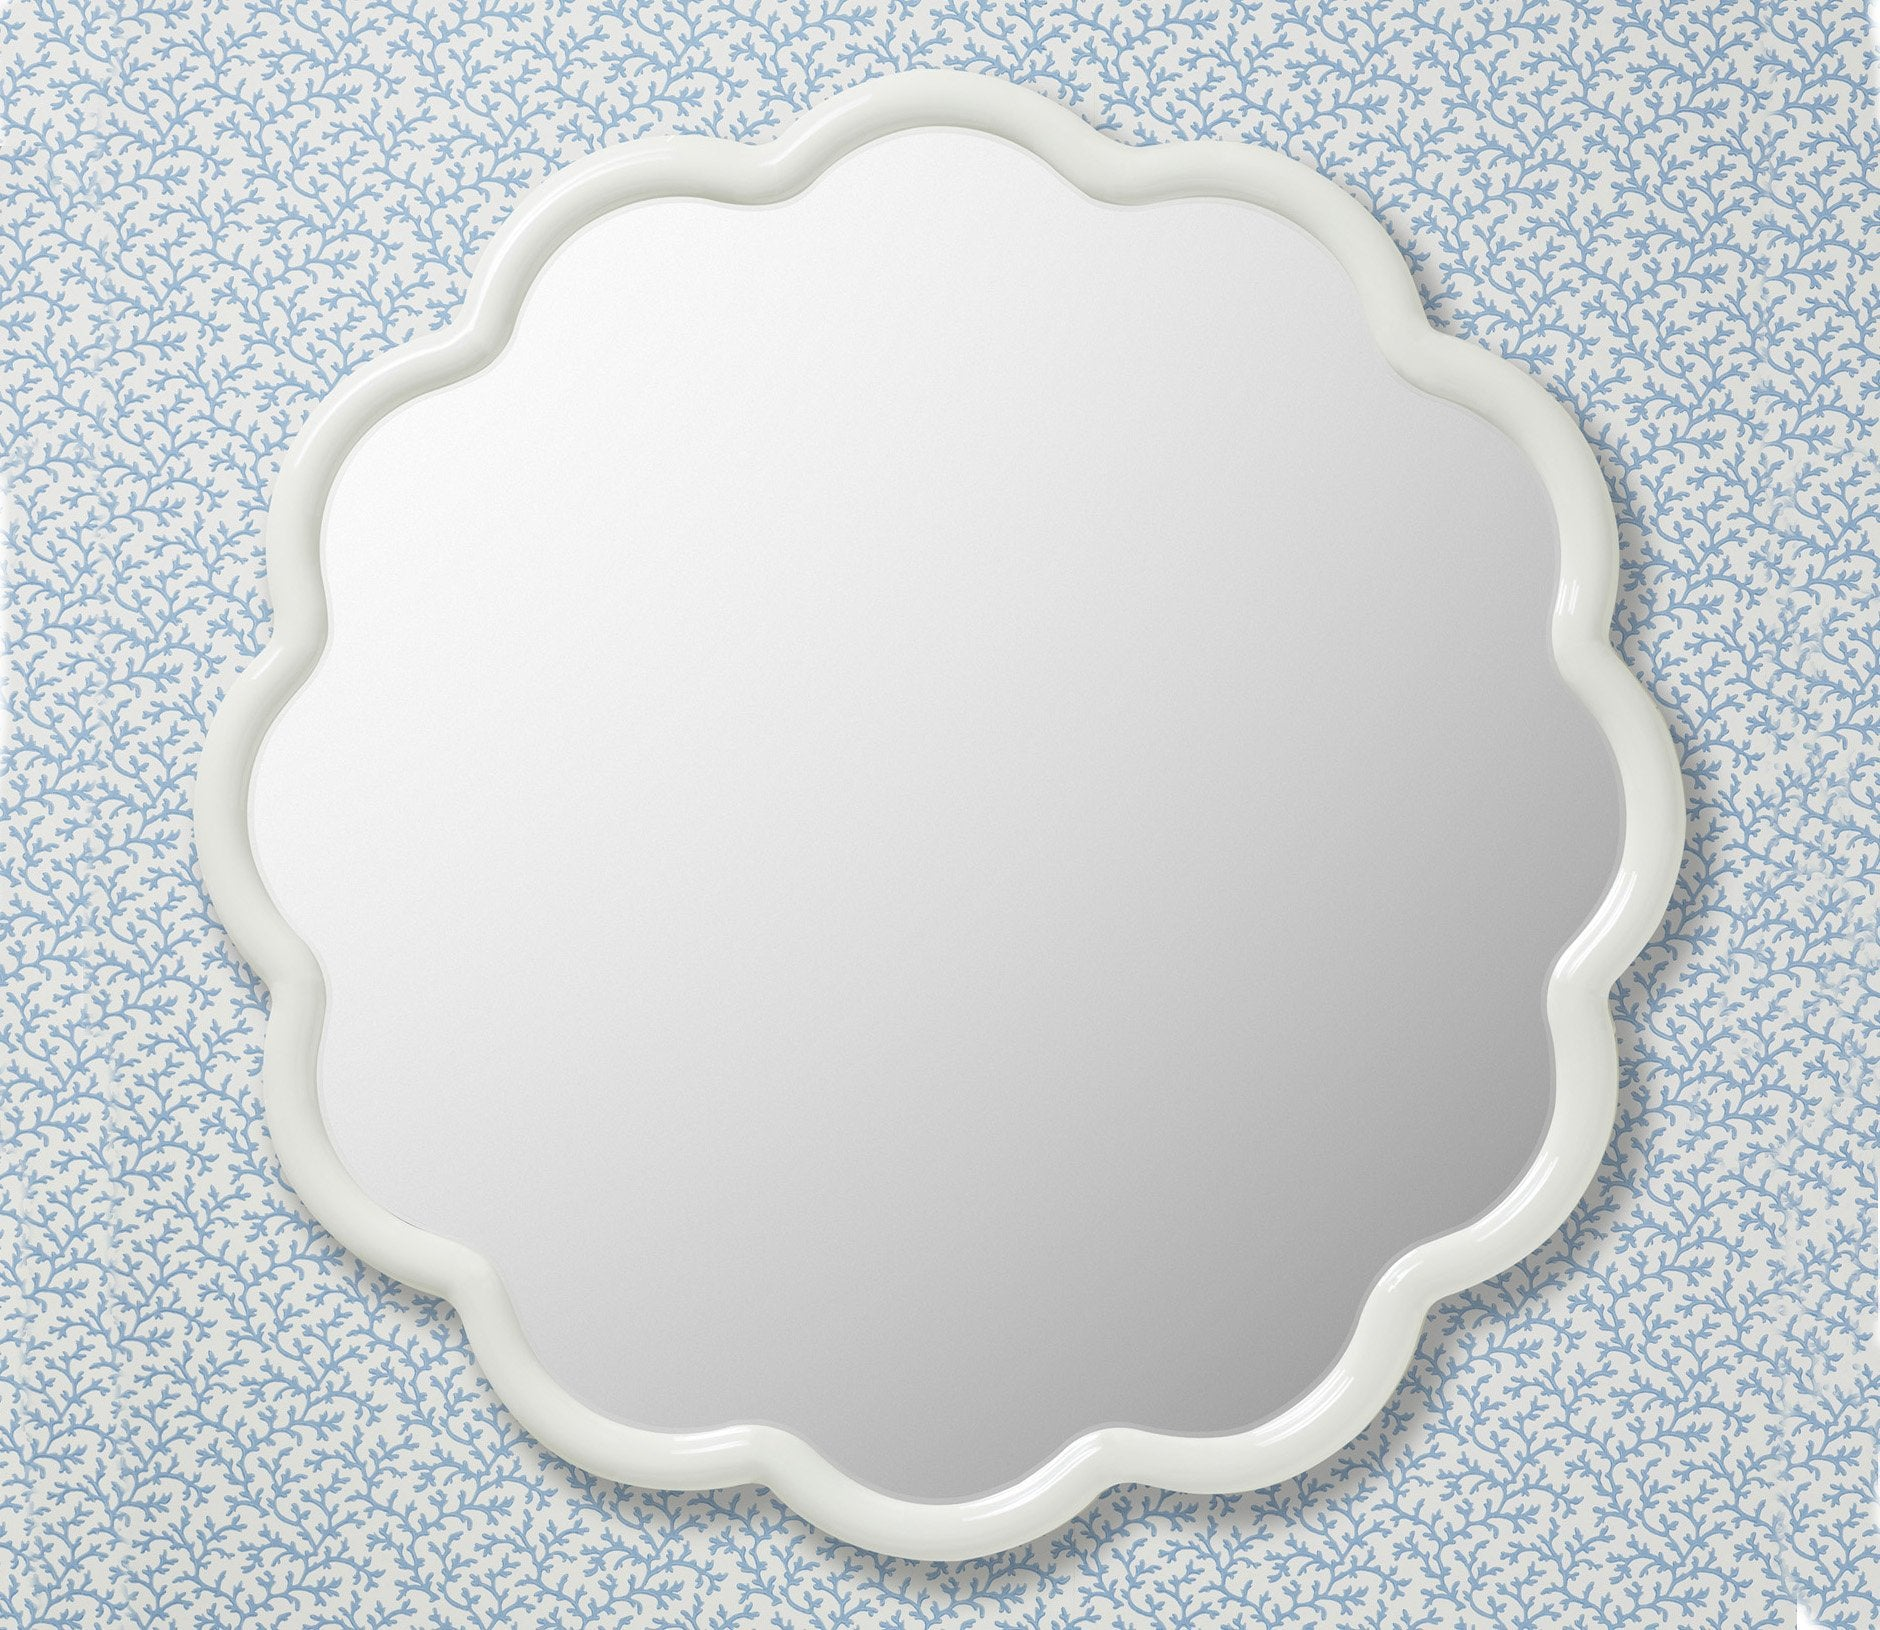 Flora Wall Mirror Large Product Image 2